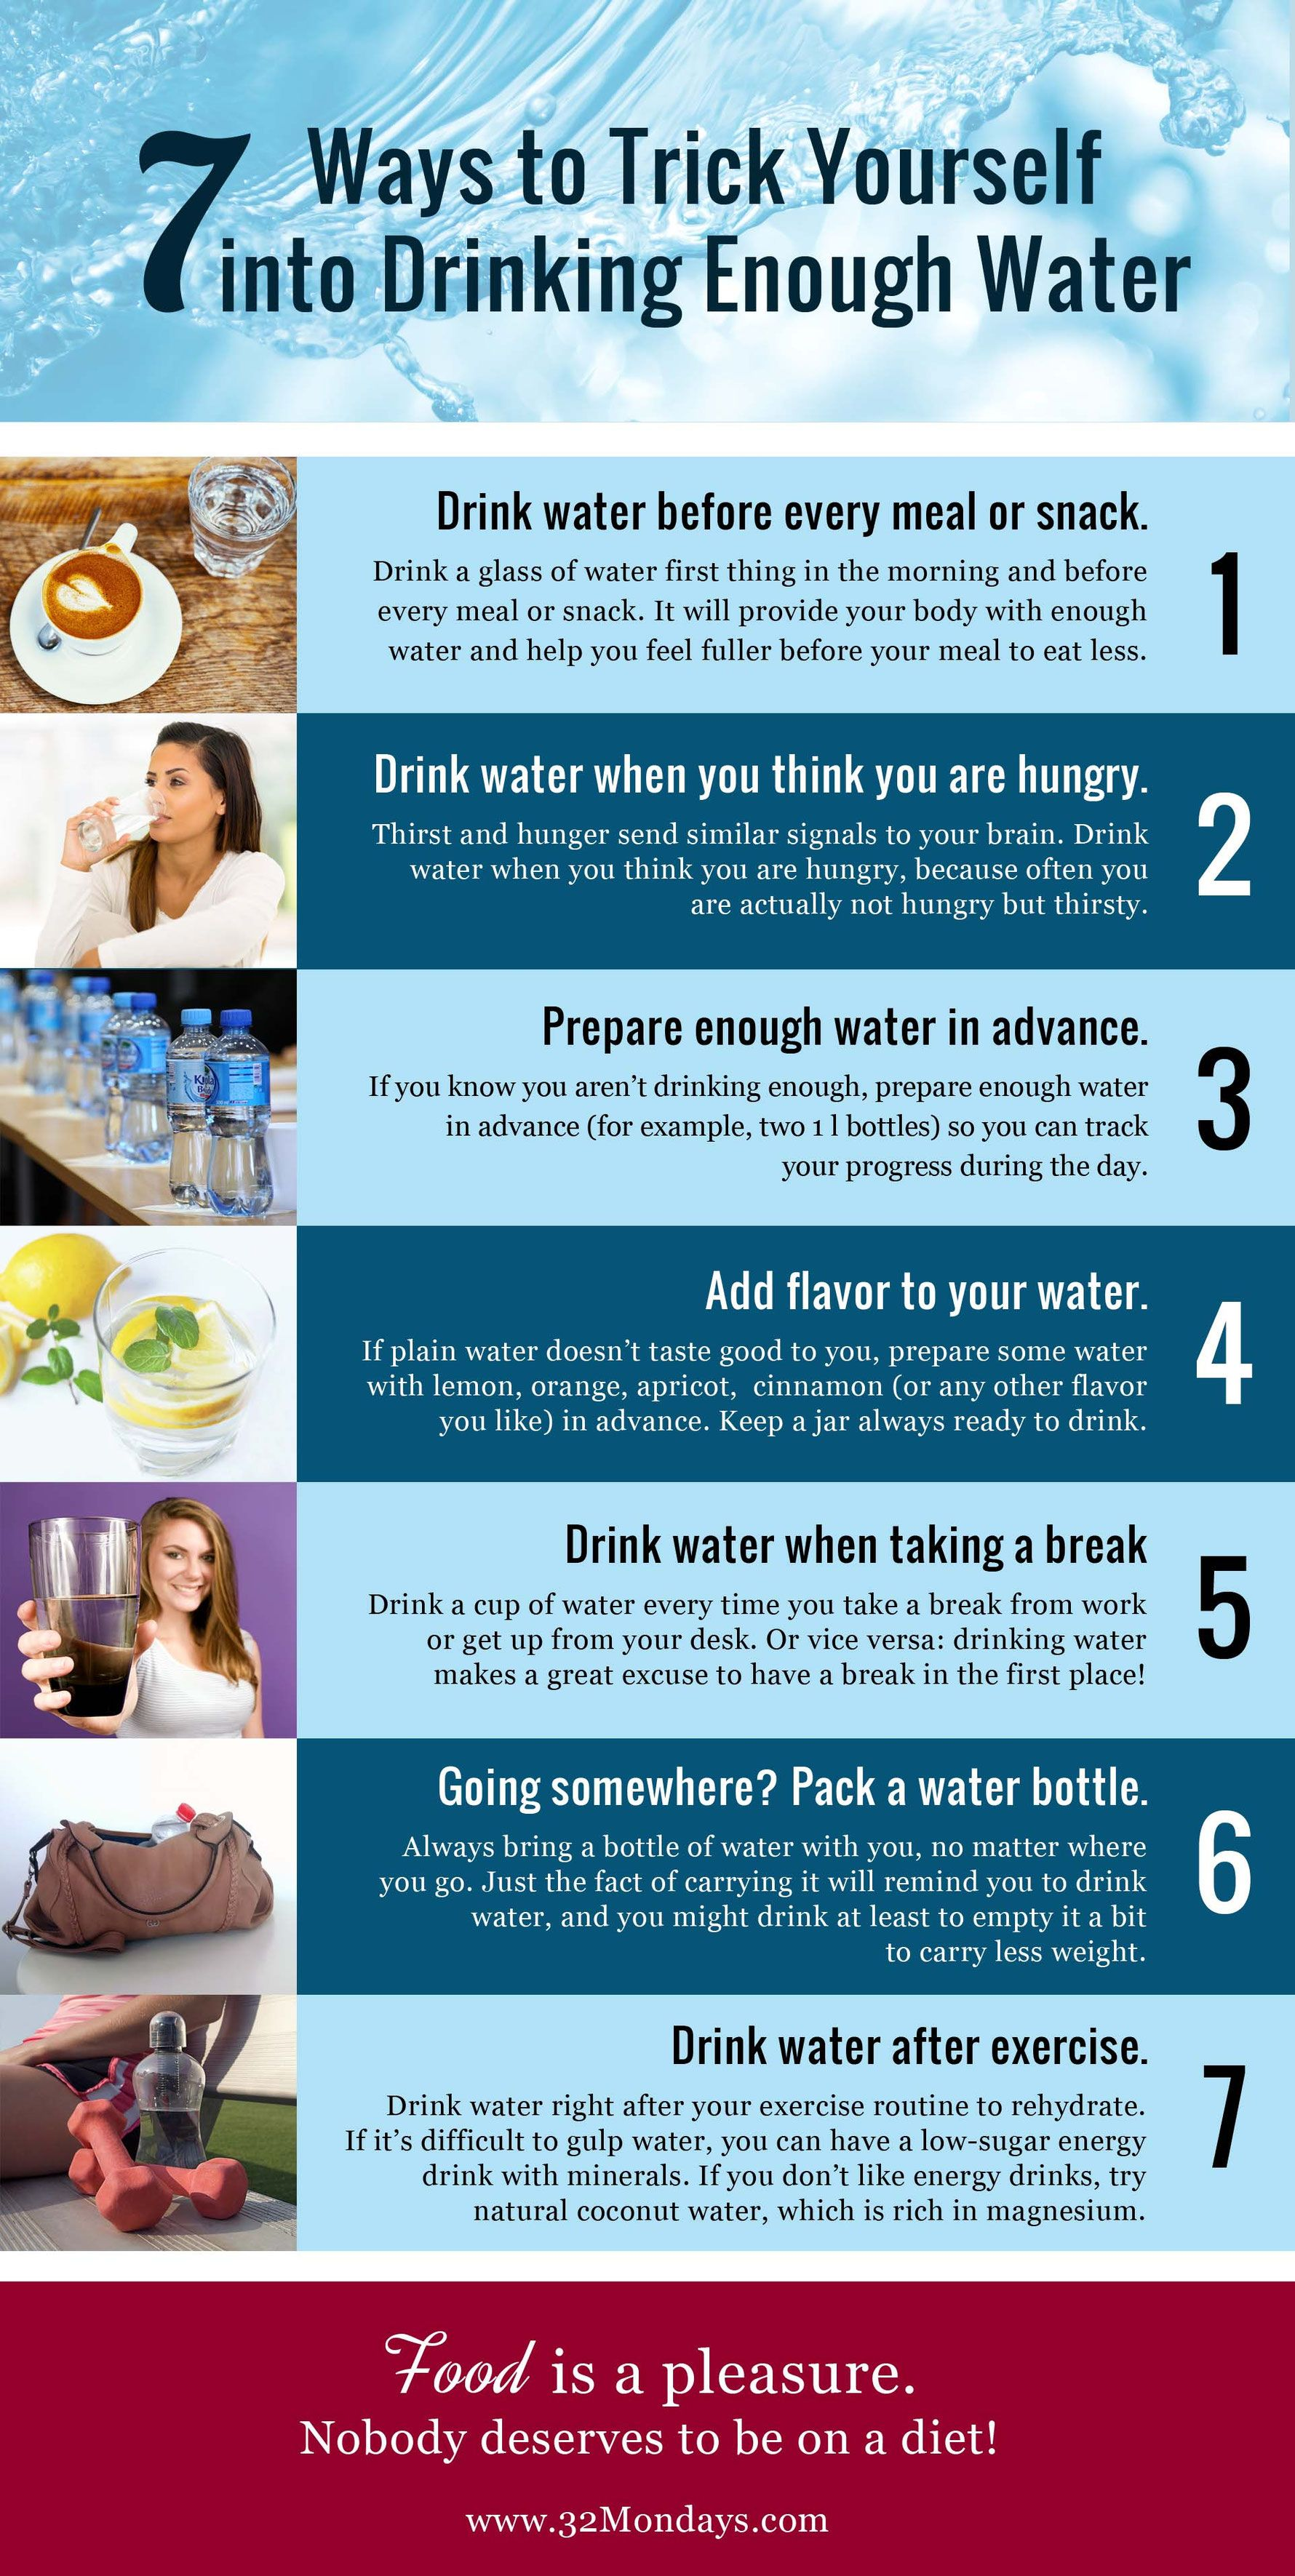 7 ways to trick yourself into drinking enough water think